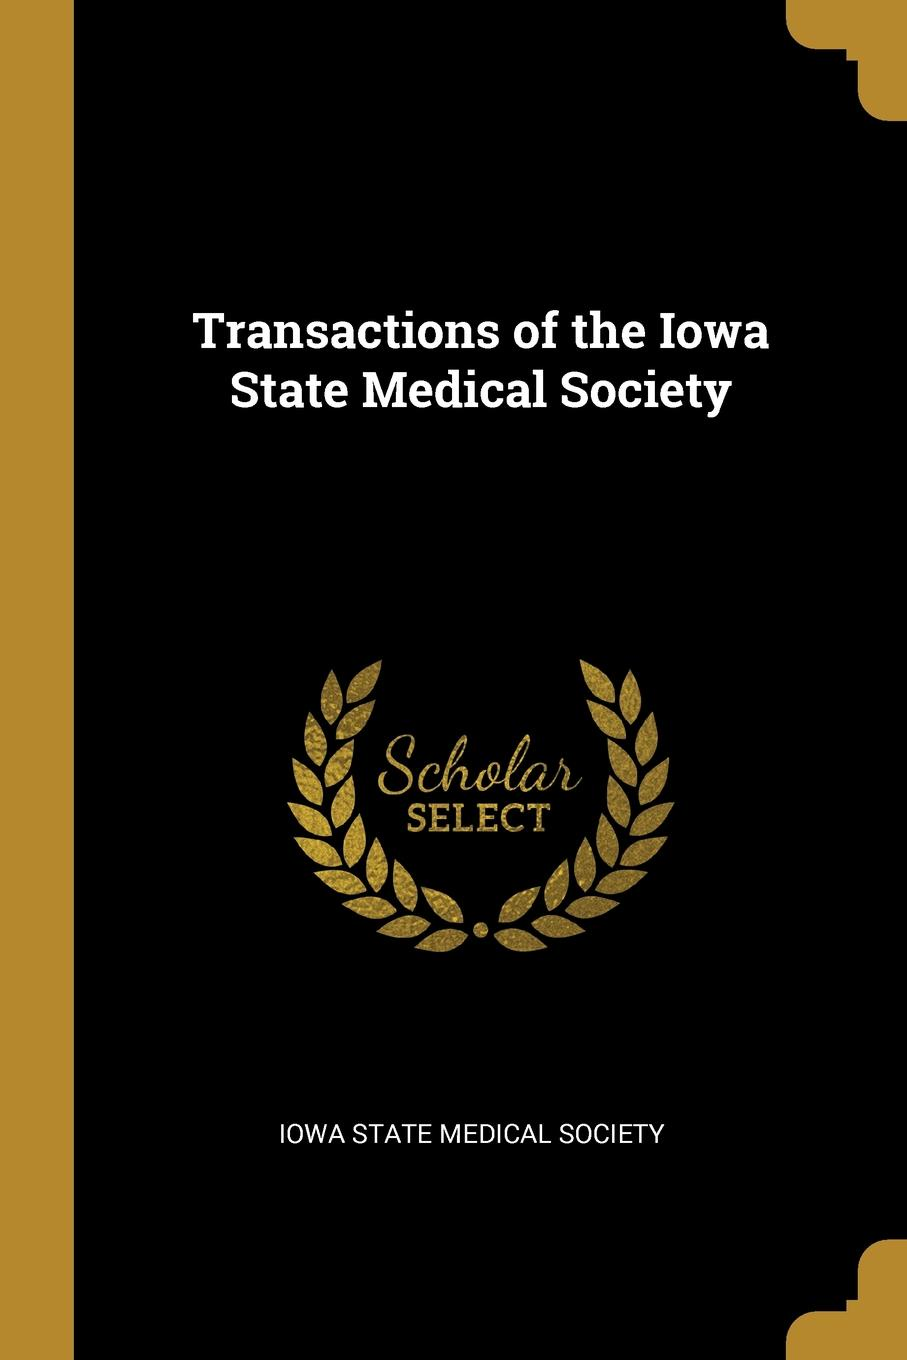 Iowa State Medical Society Transactions of the Iowa State Medical Society